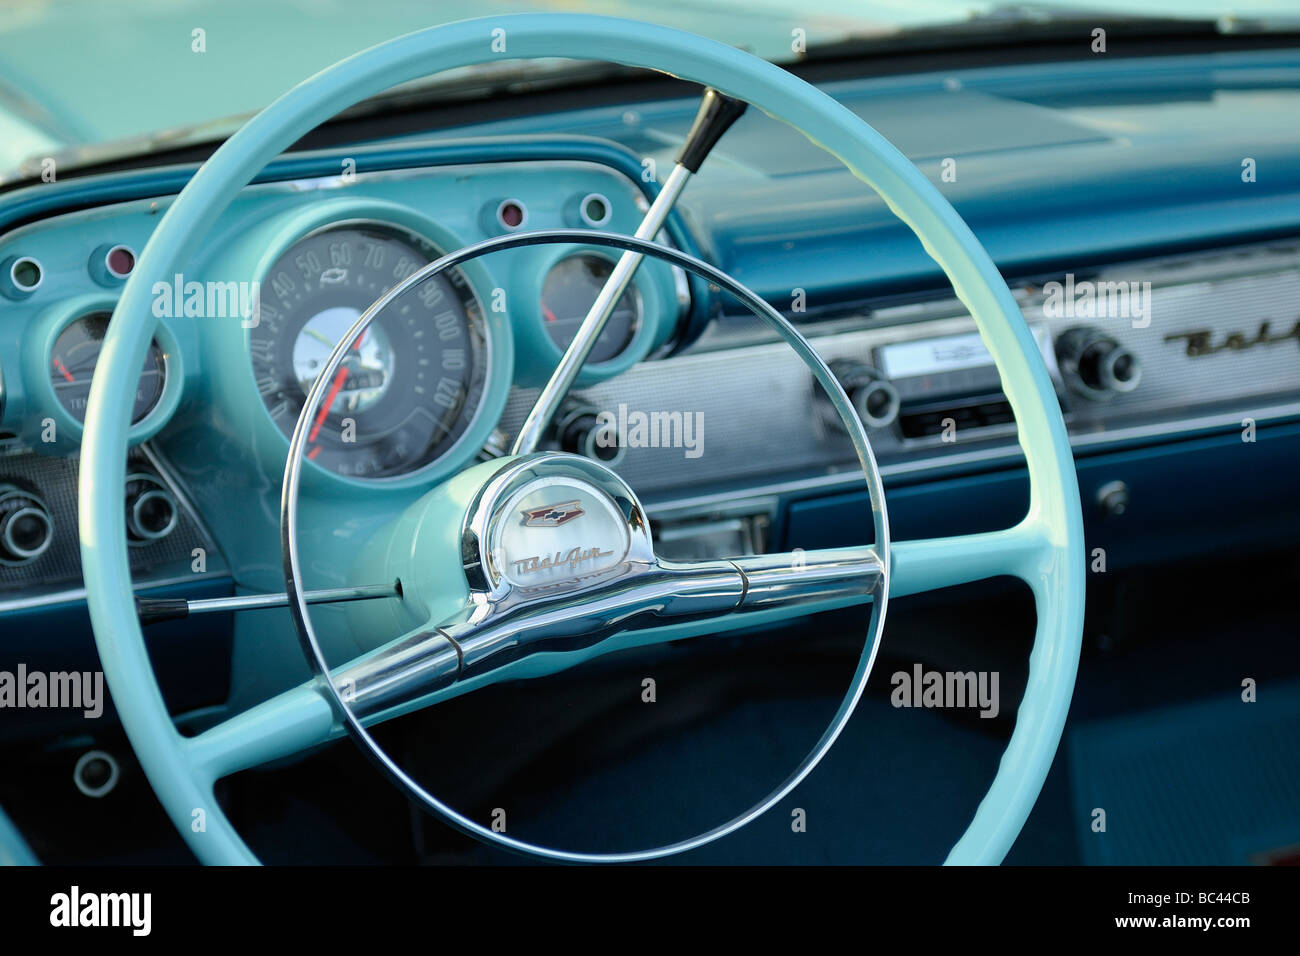 Vintage Car - Stock Image